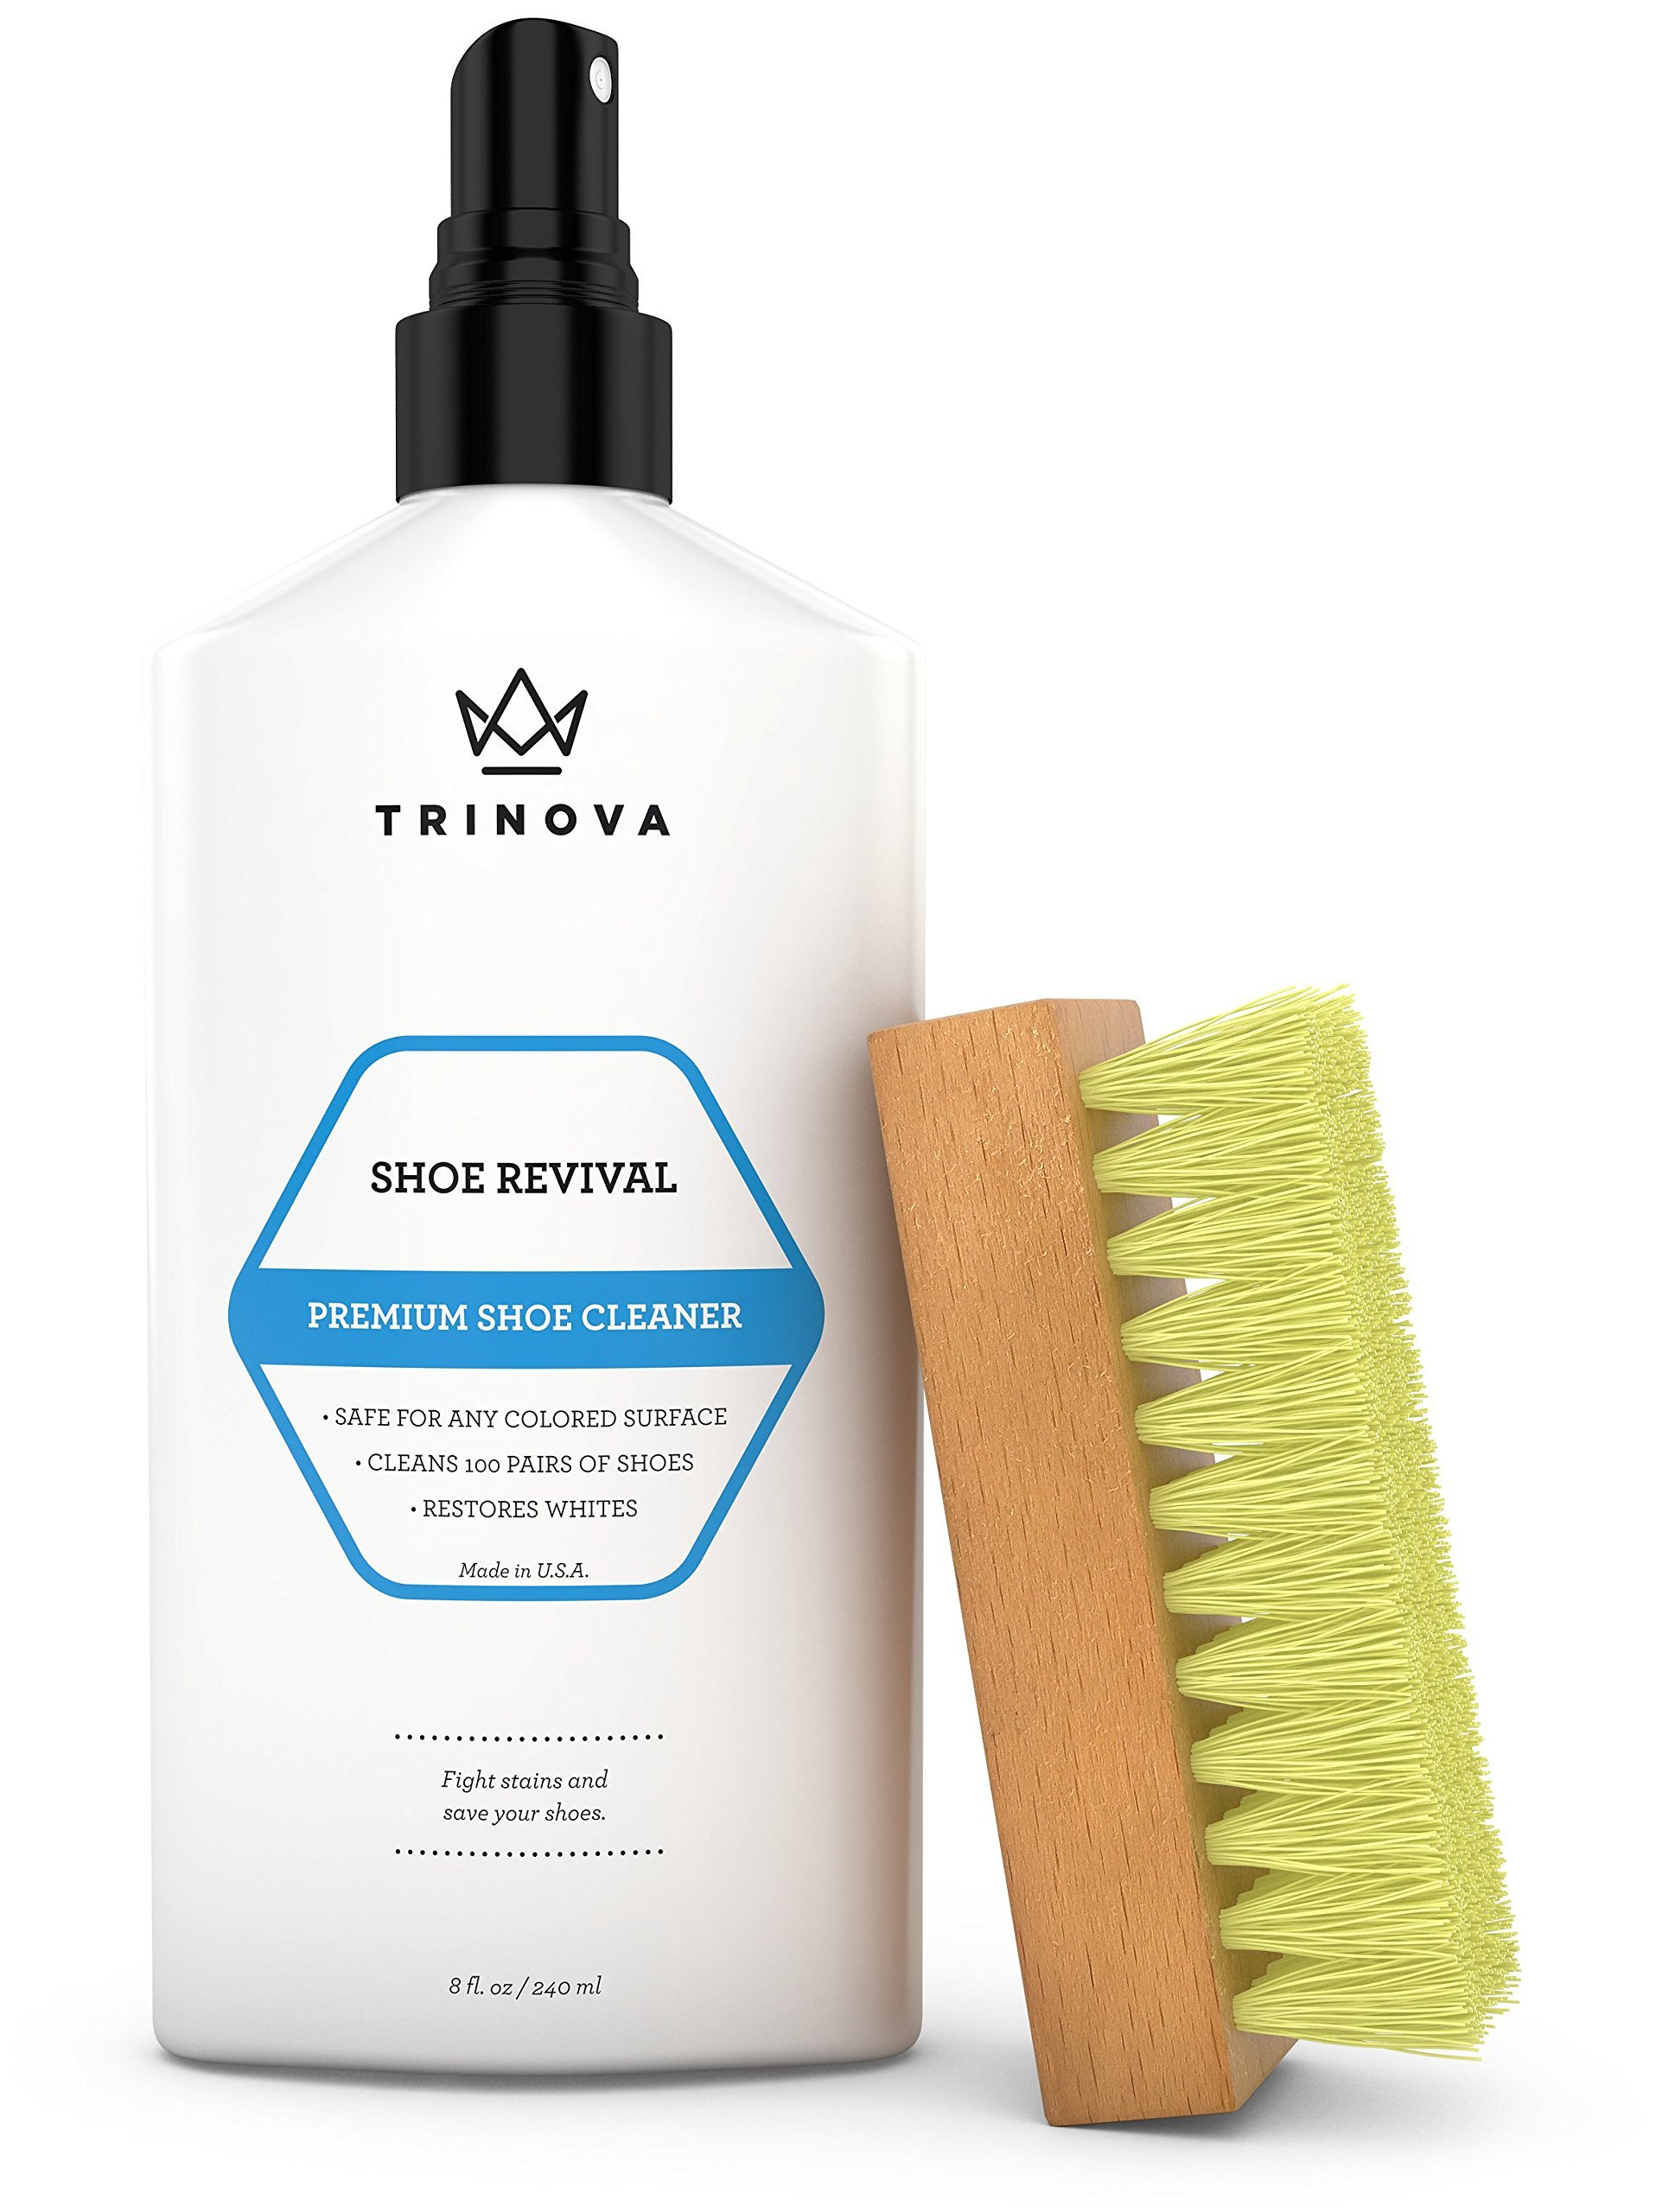 TriNova Shoe Cleaner Kit - Tennis, Sneaker, Boots, More - Premiun Cleaning to Remove Dirt and Stains. Free Brush 8OZ by TriNova (Image #1)